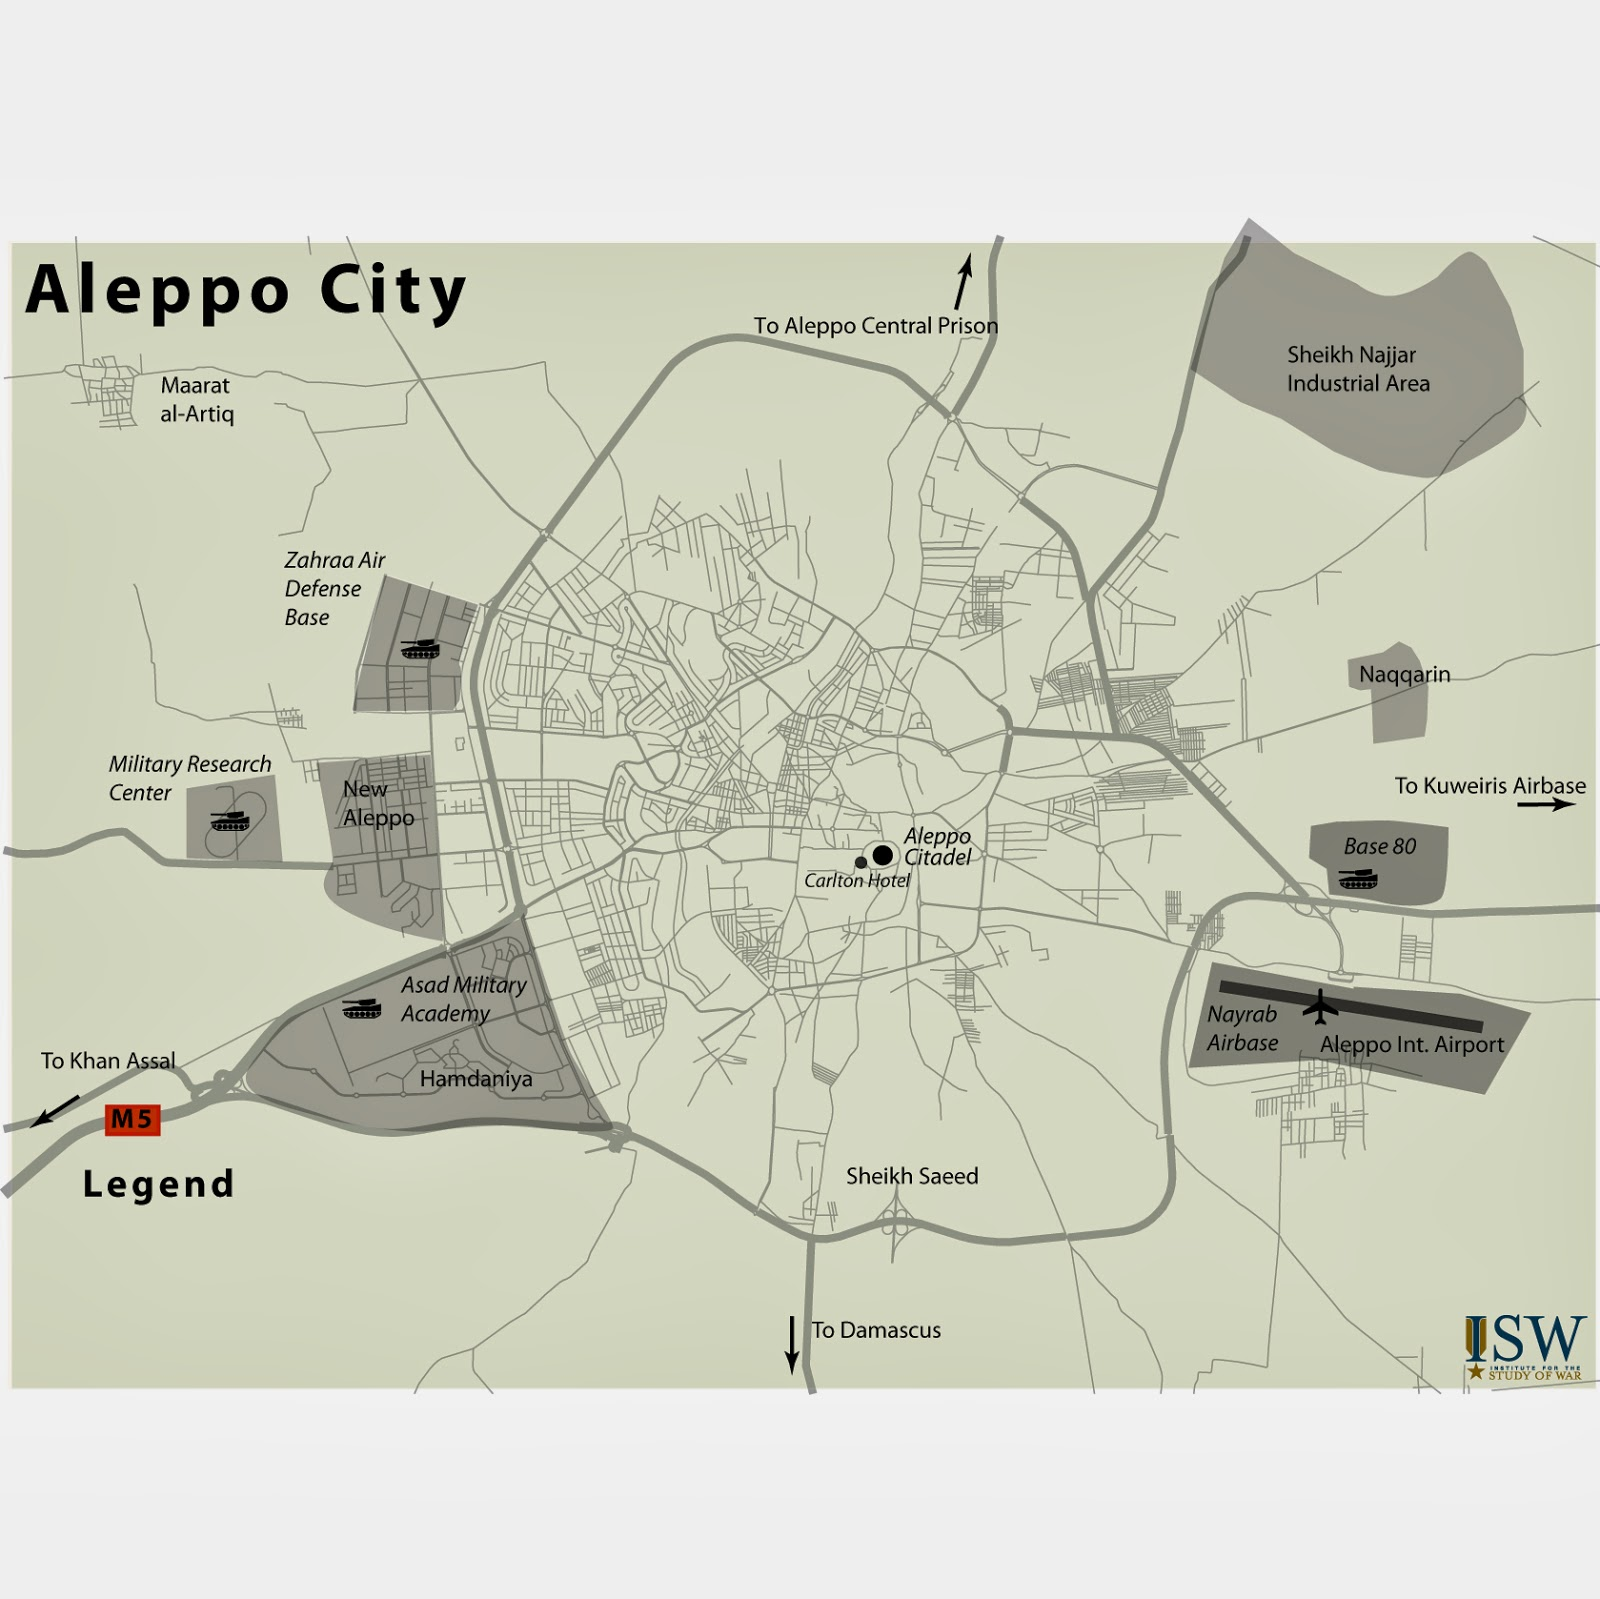 ISW Blog: The Siege of Aleppo?